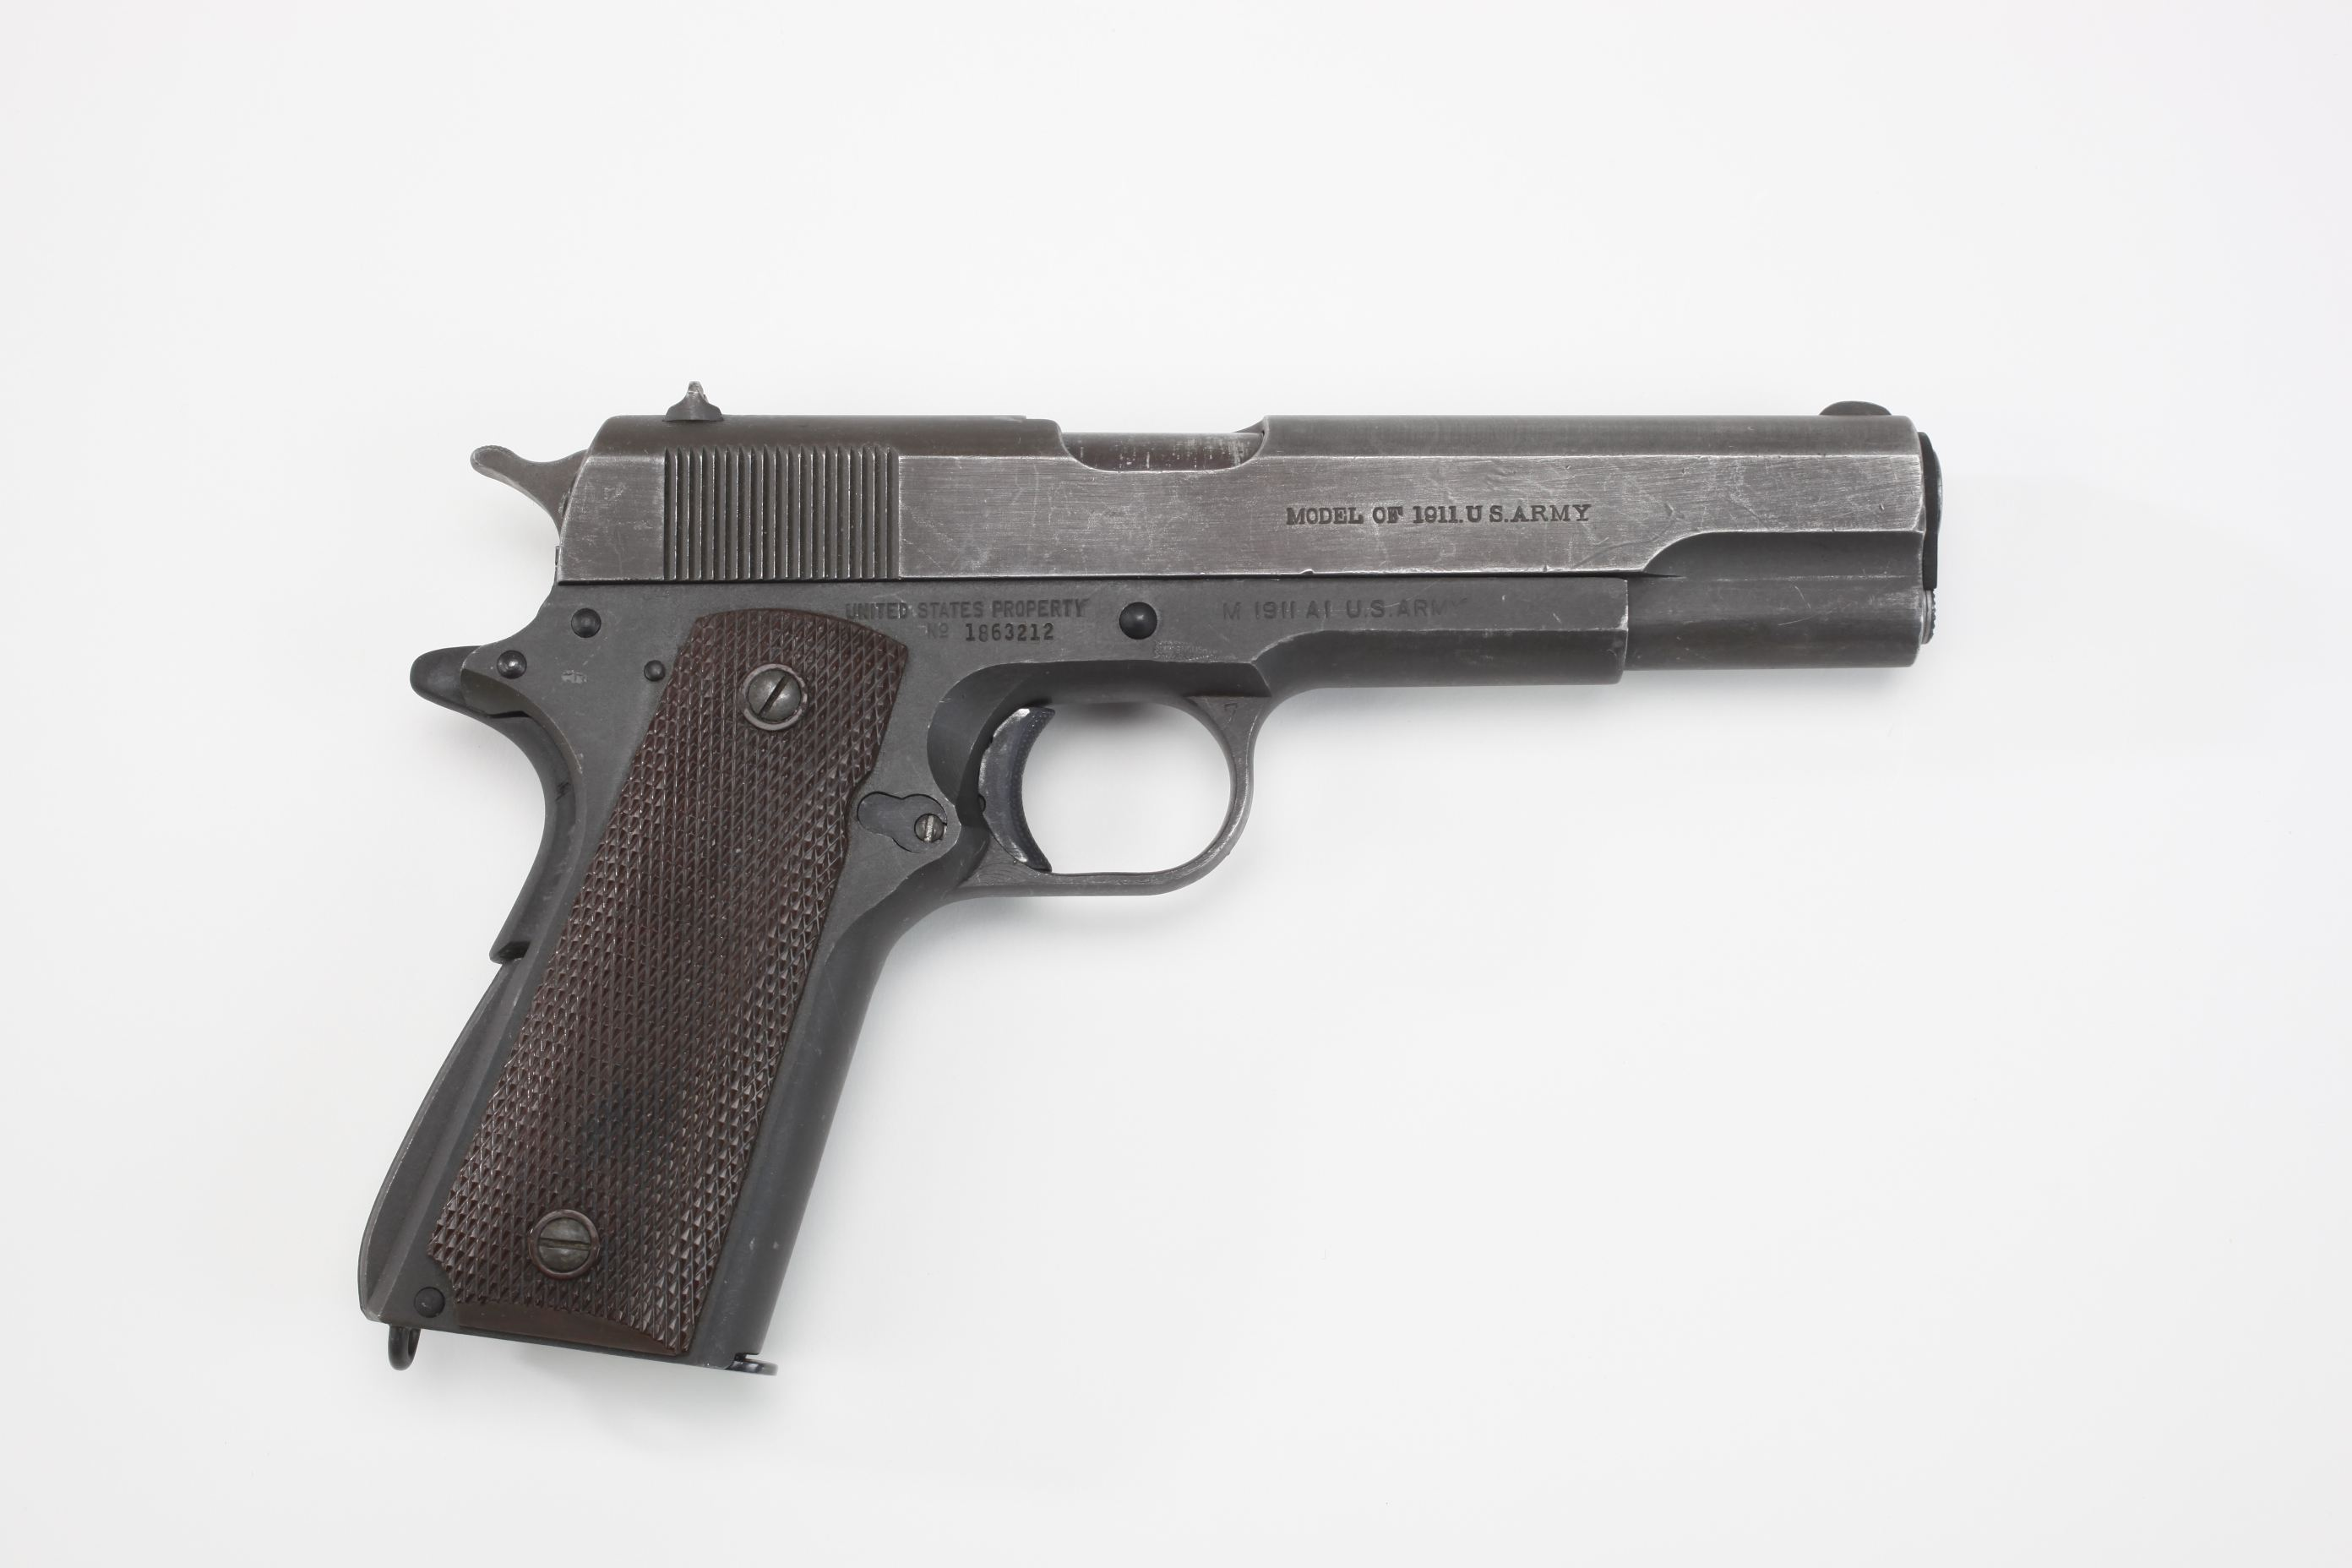 U.S. Ithaca Model 1911A1 Semi Automatic Pistol